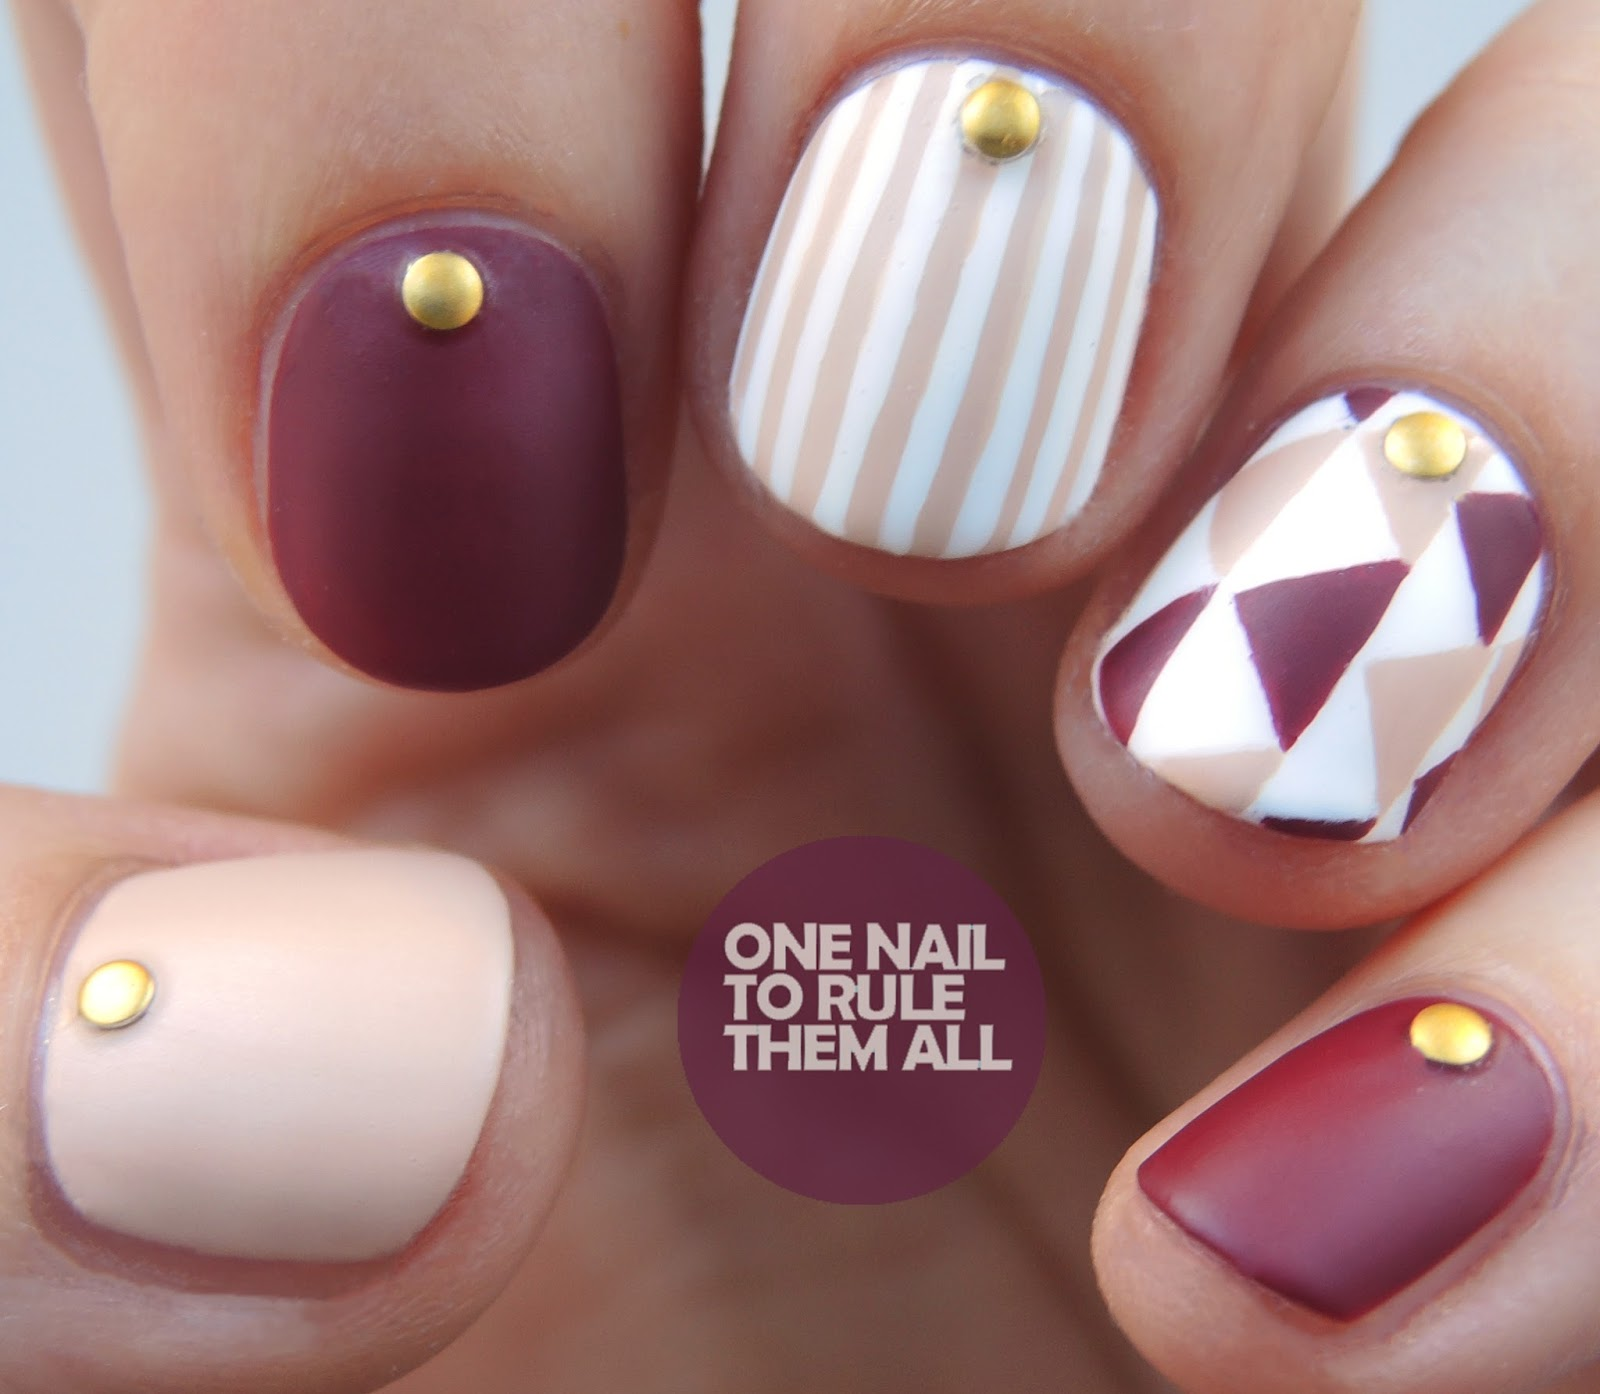 One Nail To Rule Them All Barry M Nail Art Pens Review: Burgundy Geometric Stripes Nail Art